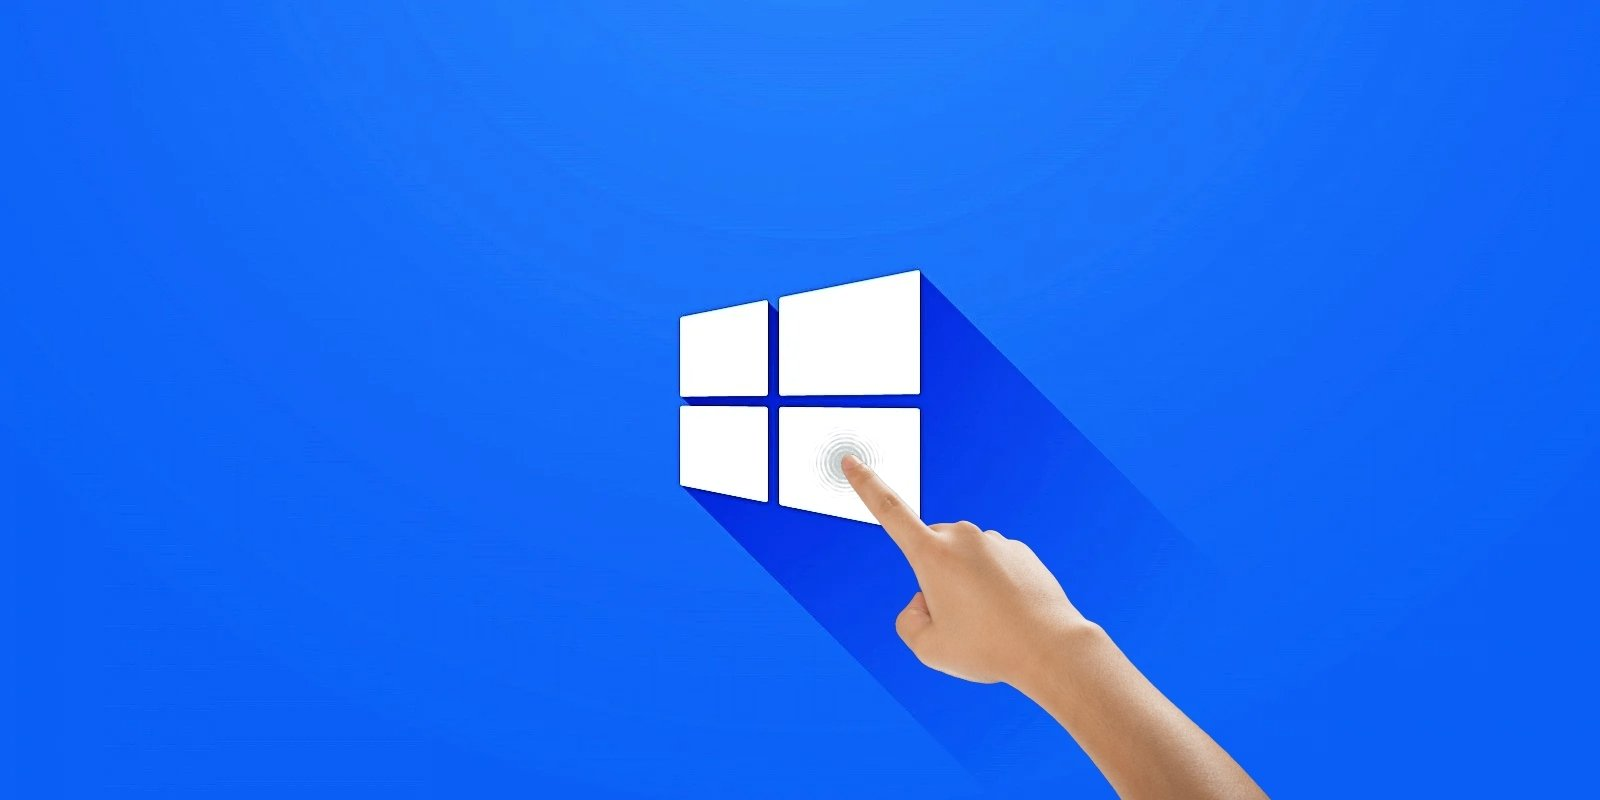 Windows Finger Command Abused By Phishing To Download Malware